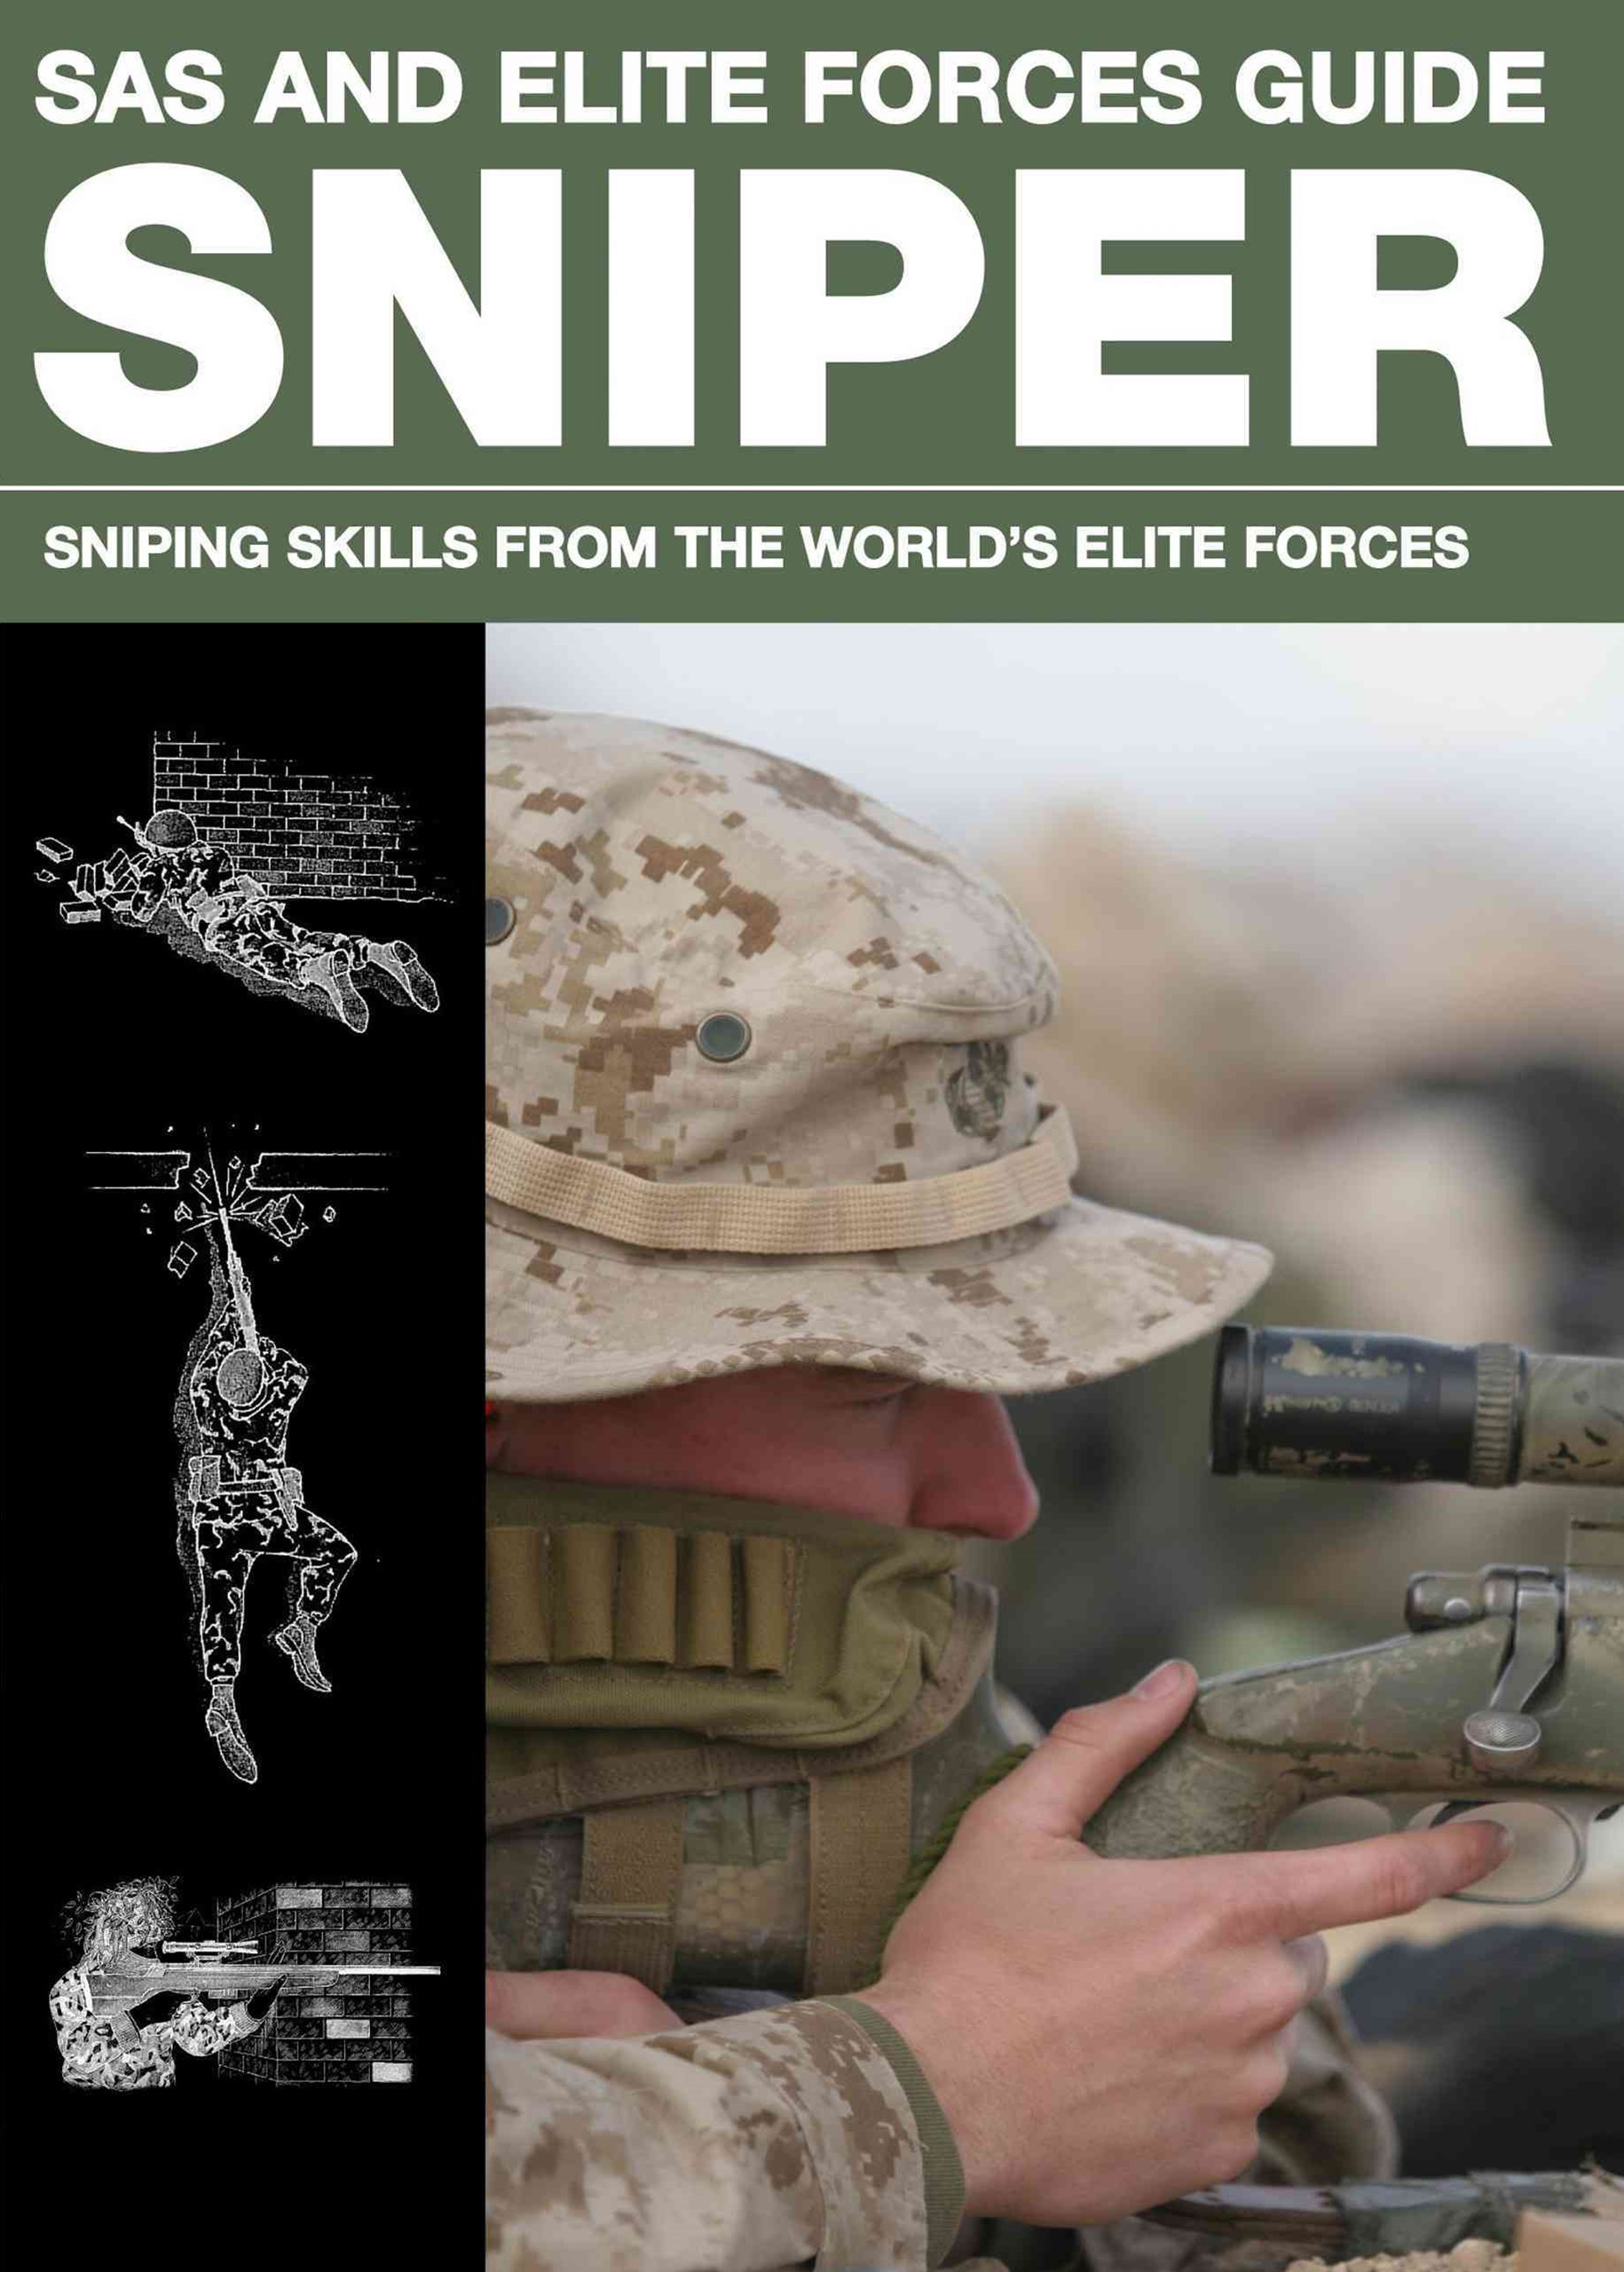 The SAS and Elite Forces Sniper Guide